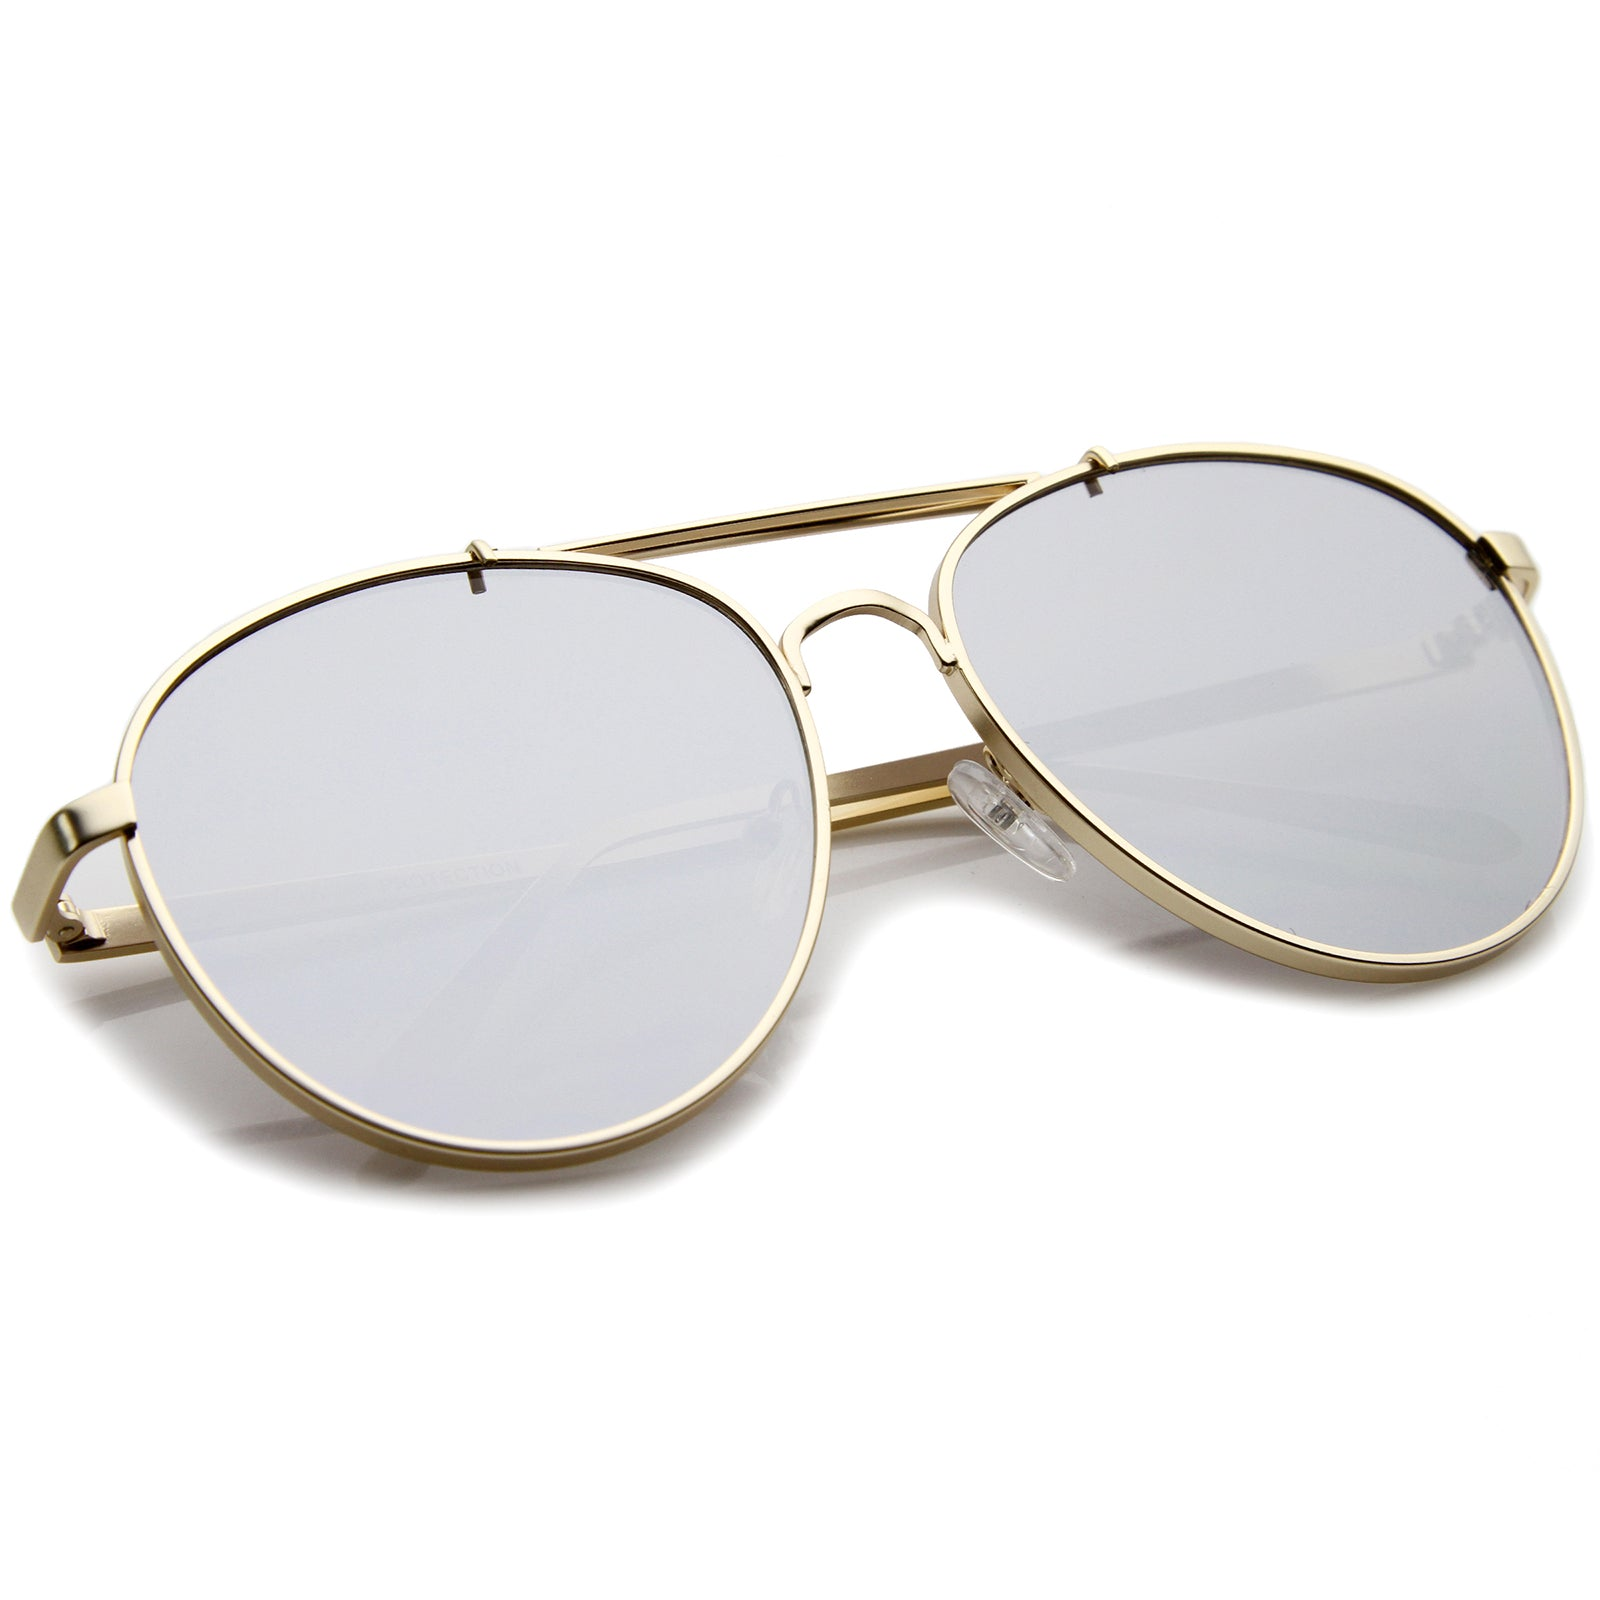 Large Metal Teardrop Double Bridge Mirrored Flat Lens Aviator Sunglasses 60mm - sunglass.la - 8